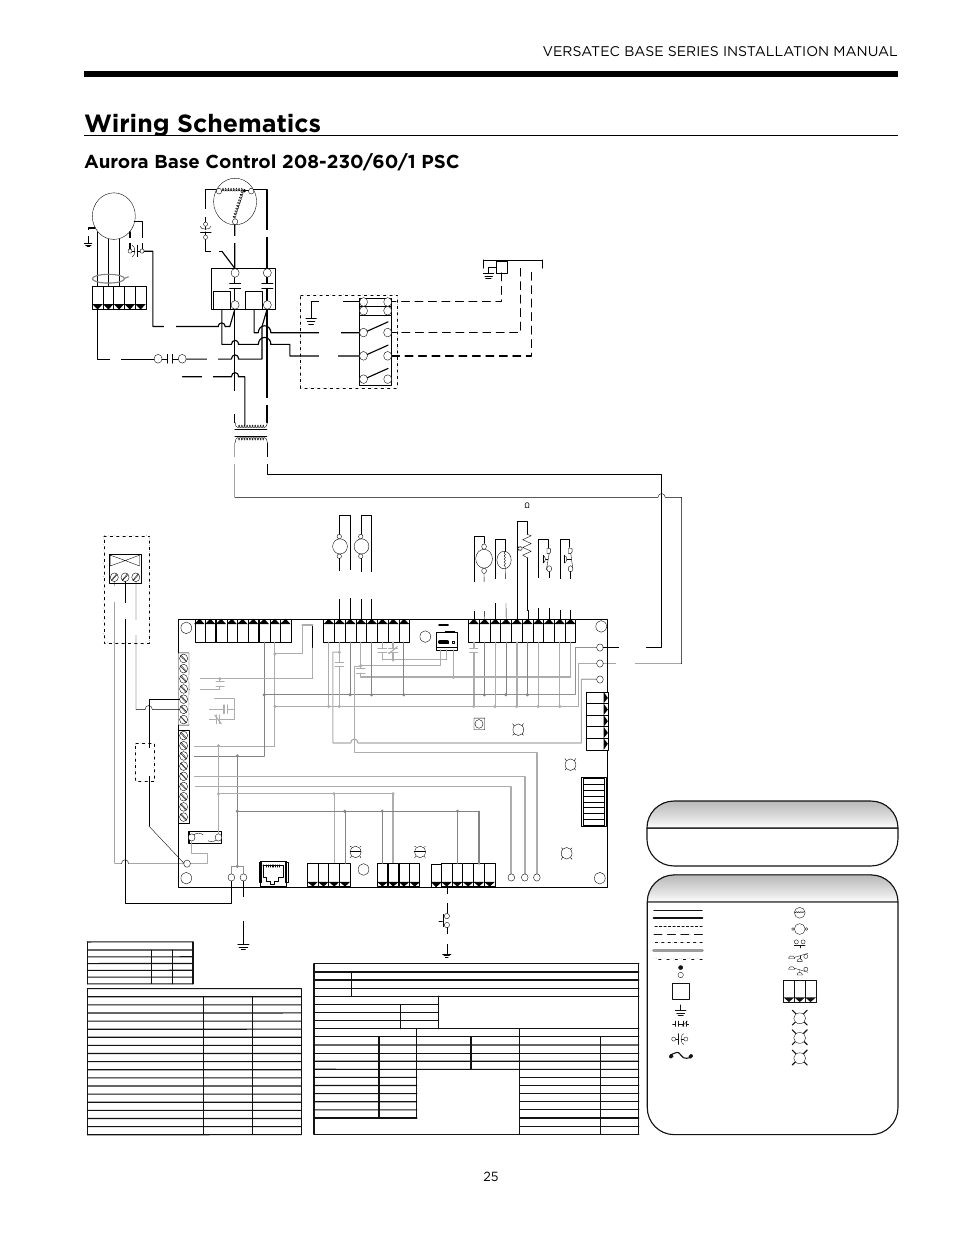 Wiring schematics, Versatec base series installation